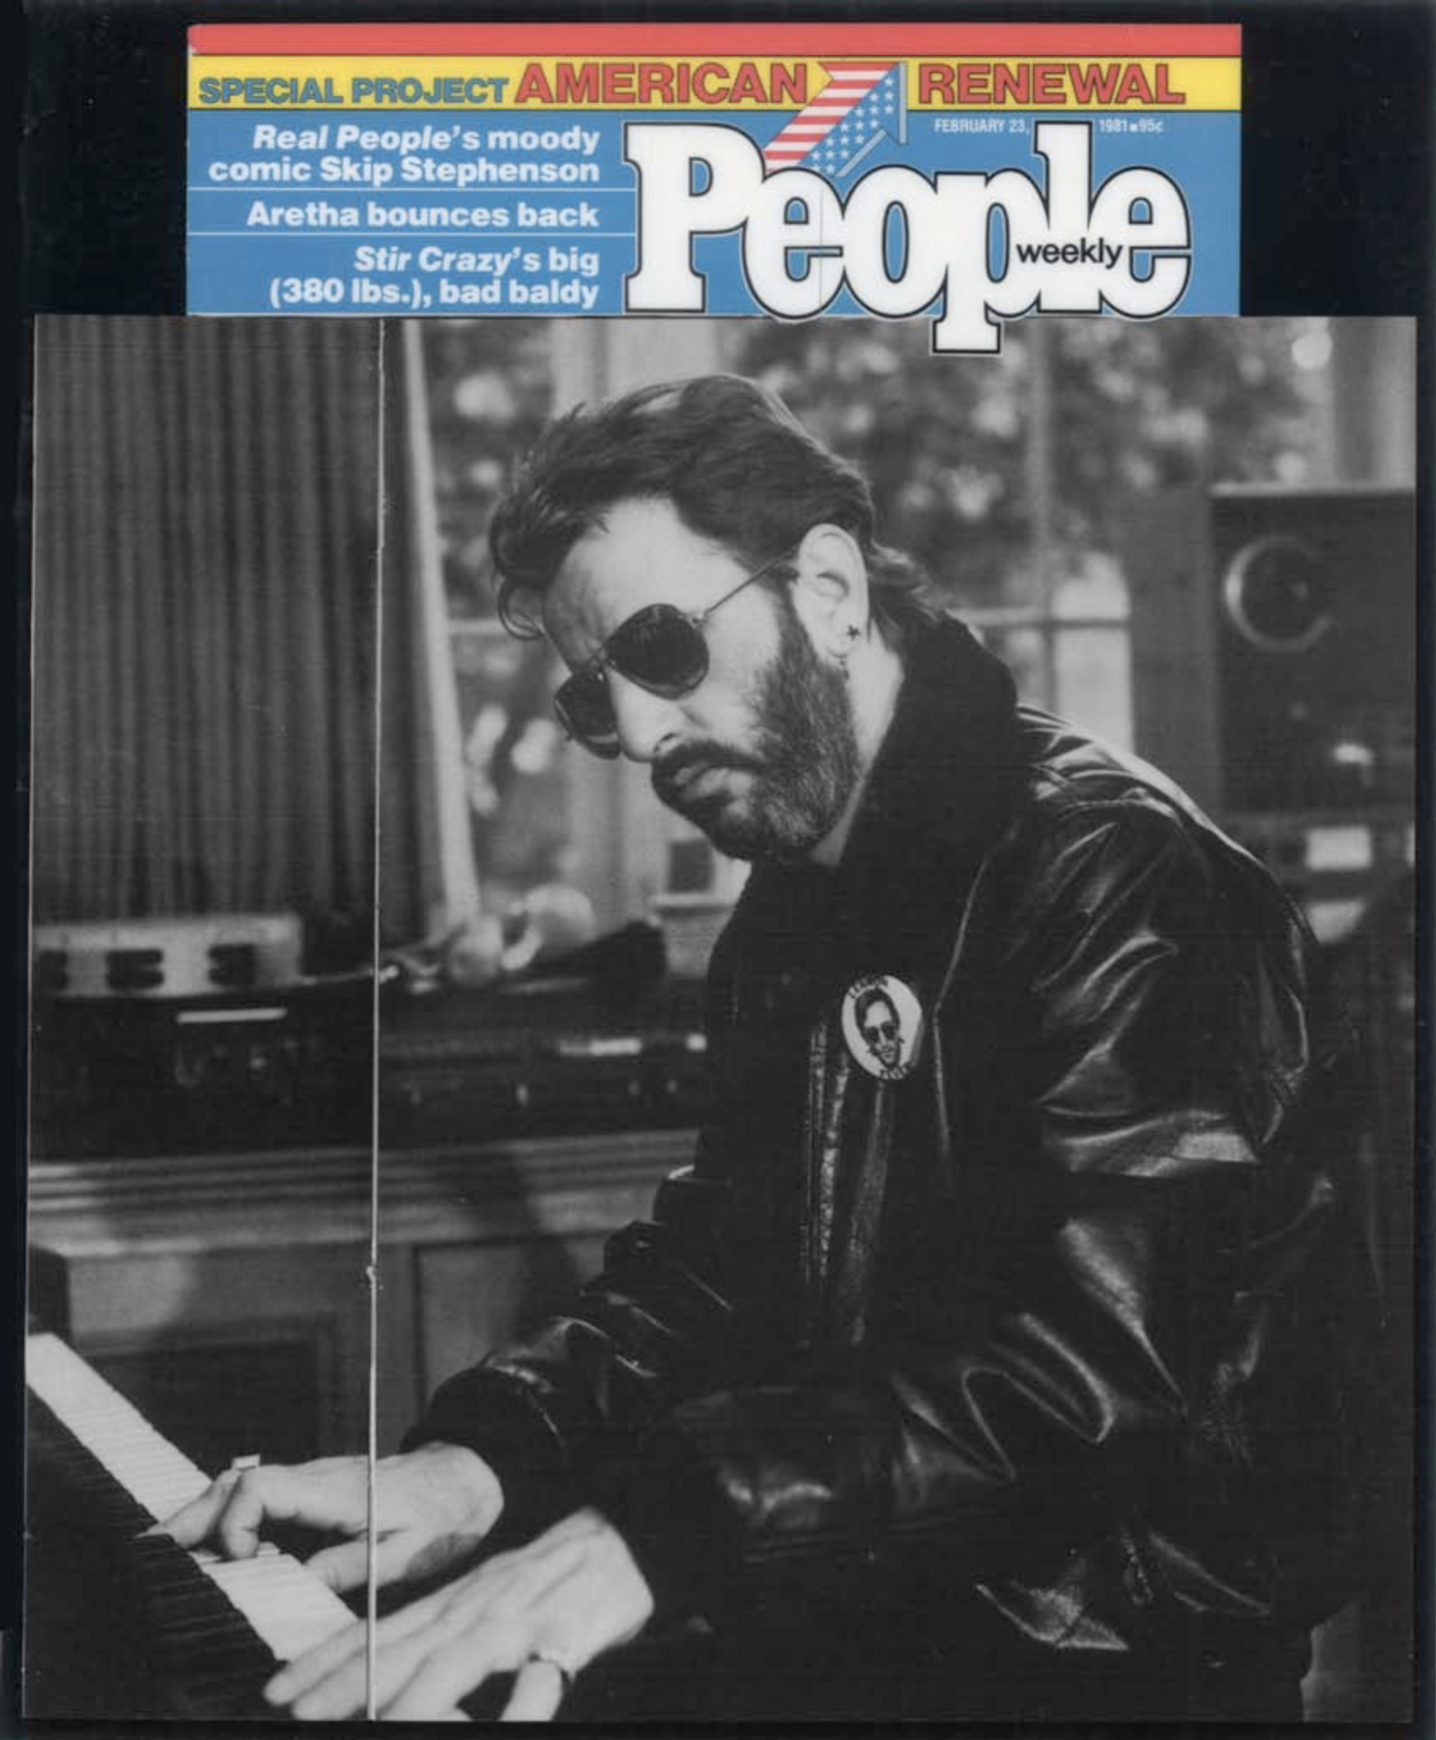 Ringo Starr, The Beatles - Robert Comstock Leather Jacket featured on People (1981)